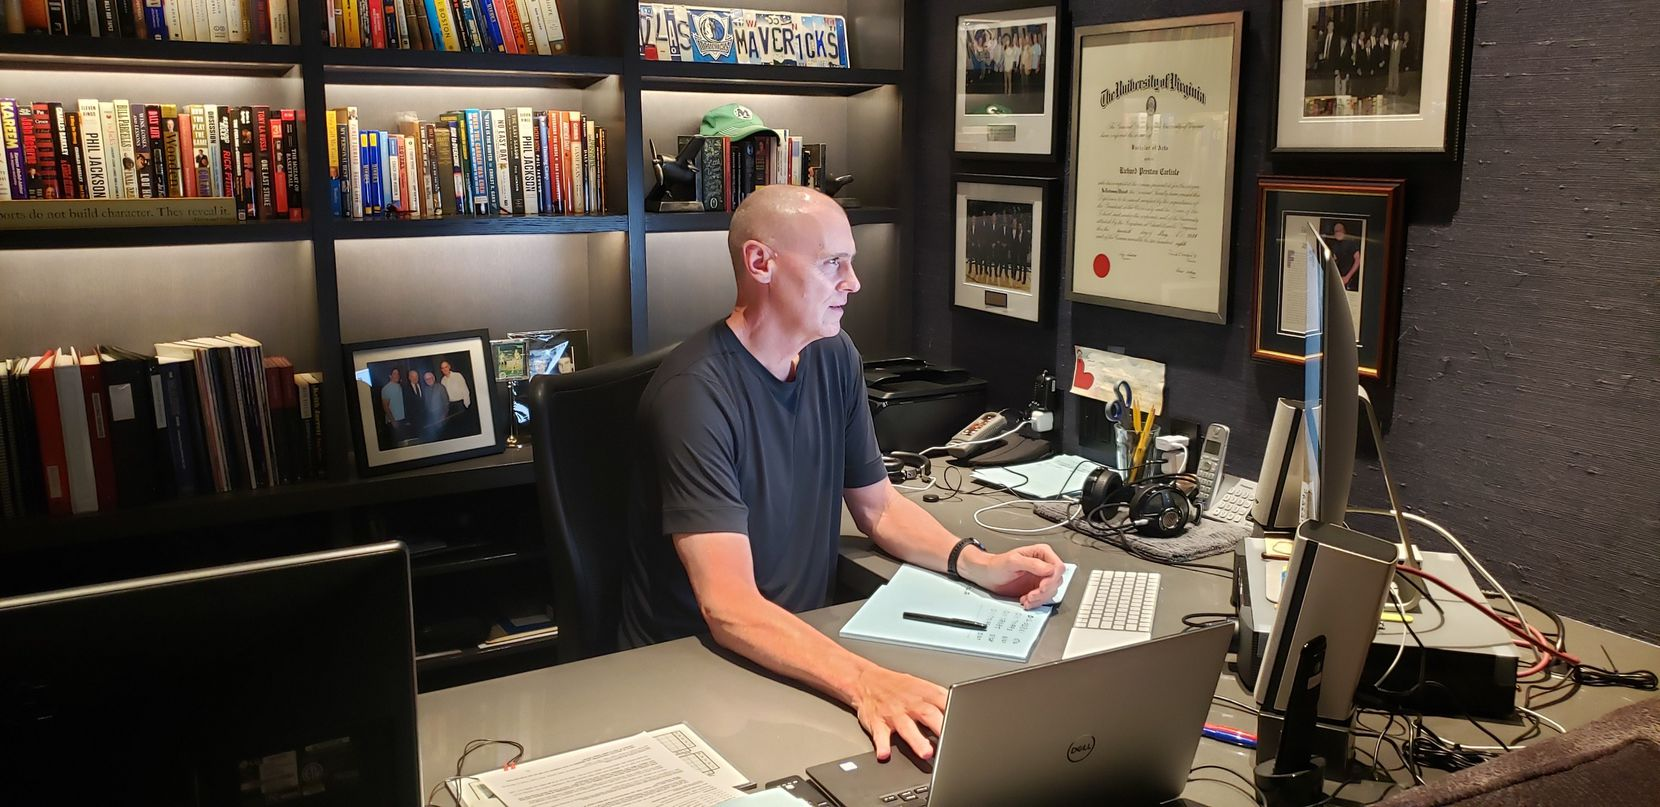 Rick Carlisle on a recent Zoom call in his home office with Mark Cuban, Donnie Nelson, players and Mavericks staff. (Courtesy / Rick Carlisle)